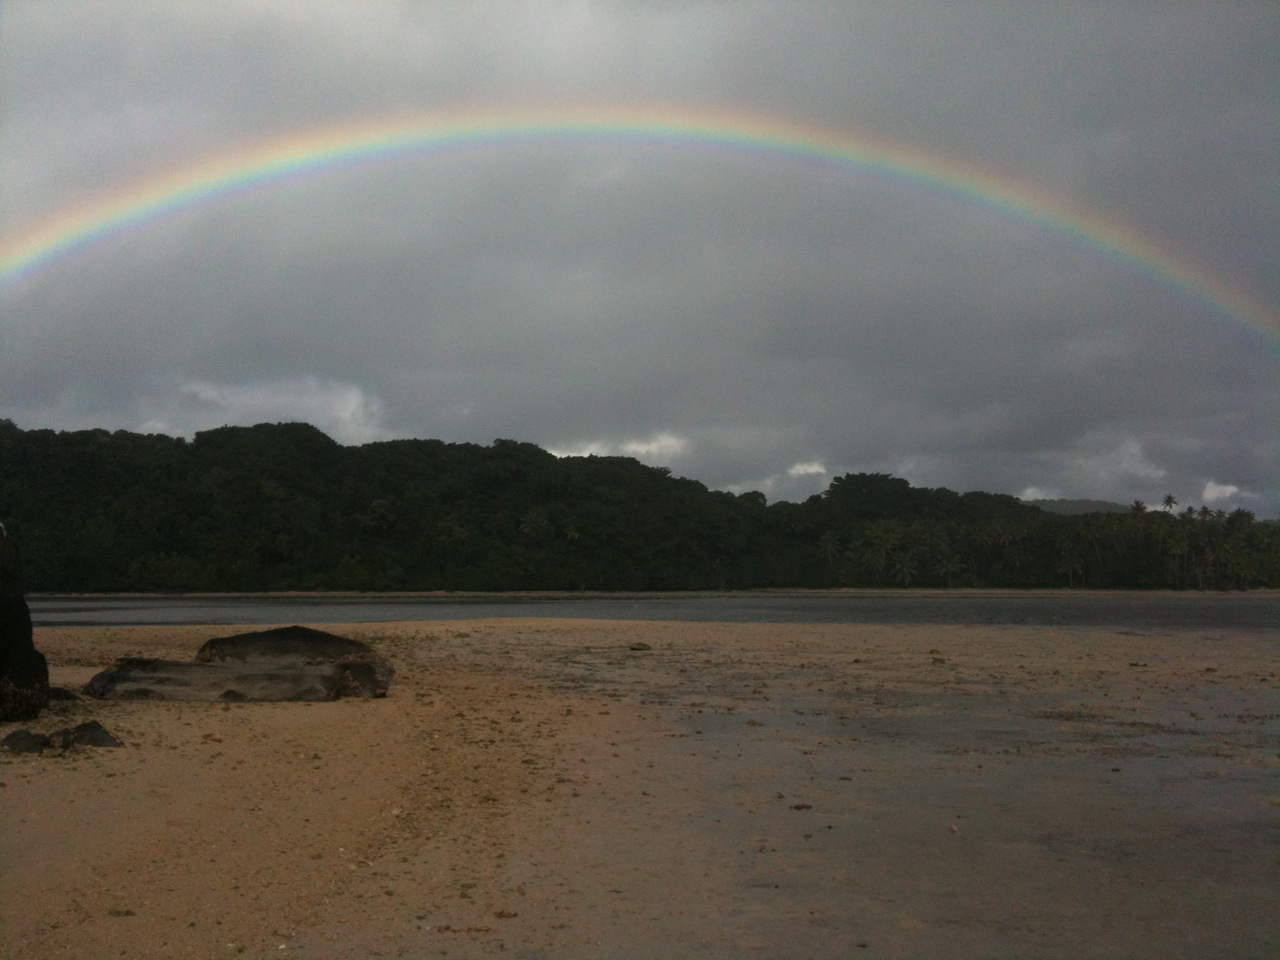 Rainbow as seen from shore of island near Papageno Resort.